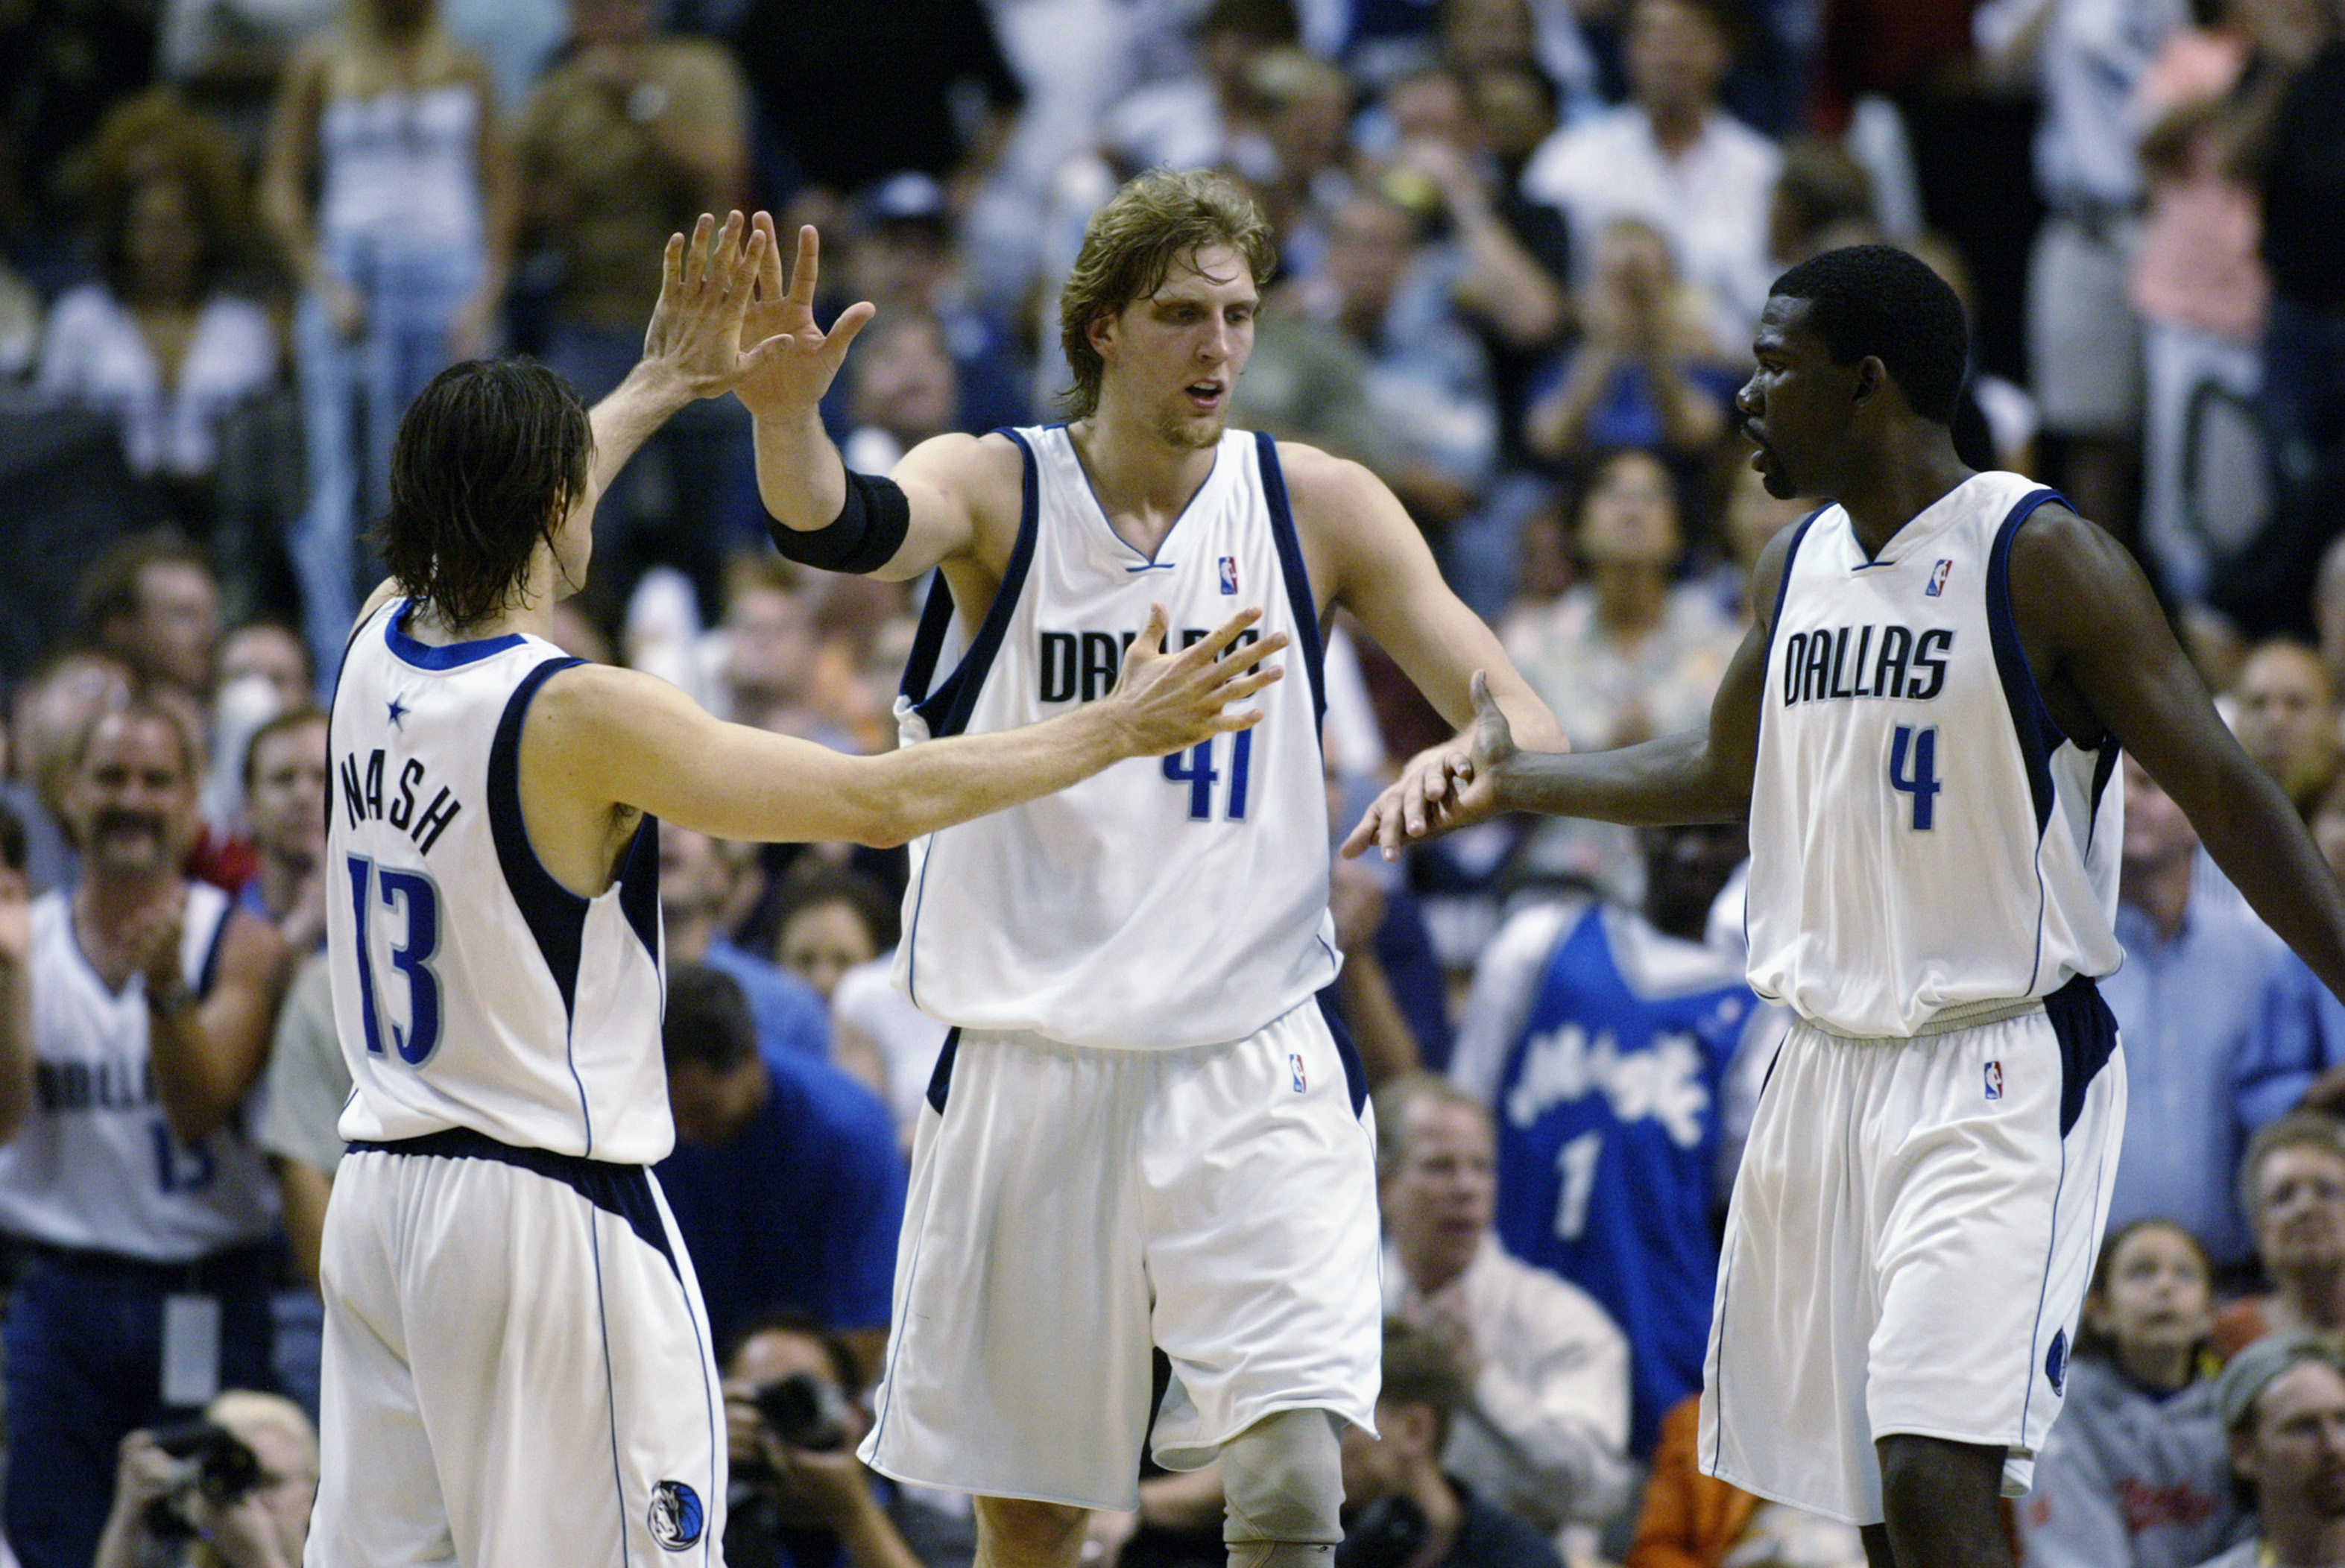 DALLAS - MAY 4:  (Left to Right) Steve Nash #13, Dirk Nowitzki #41, and Michael Finley #4 of the Dallas Mavericks celebrate in Game seven of the Western Conference Quarterfinals against the Portland Trail Blazers during the 2003 NBA Playoffs at American A